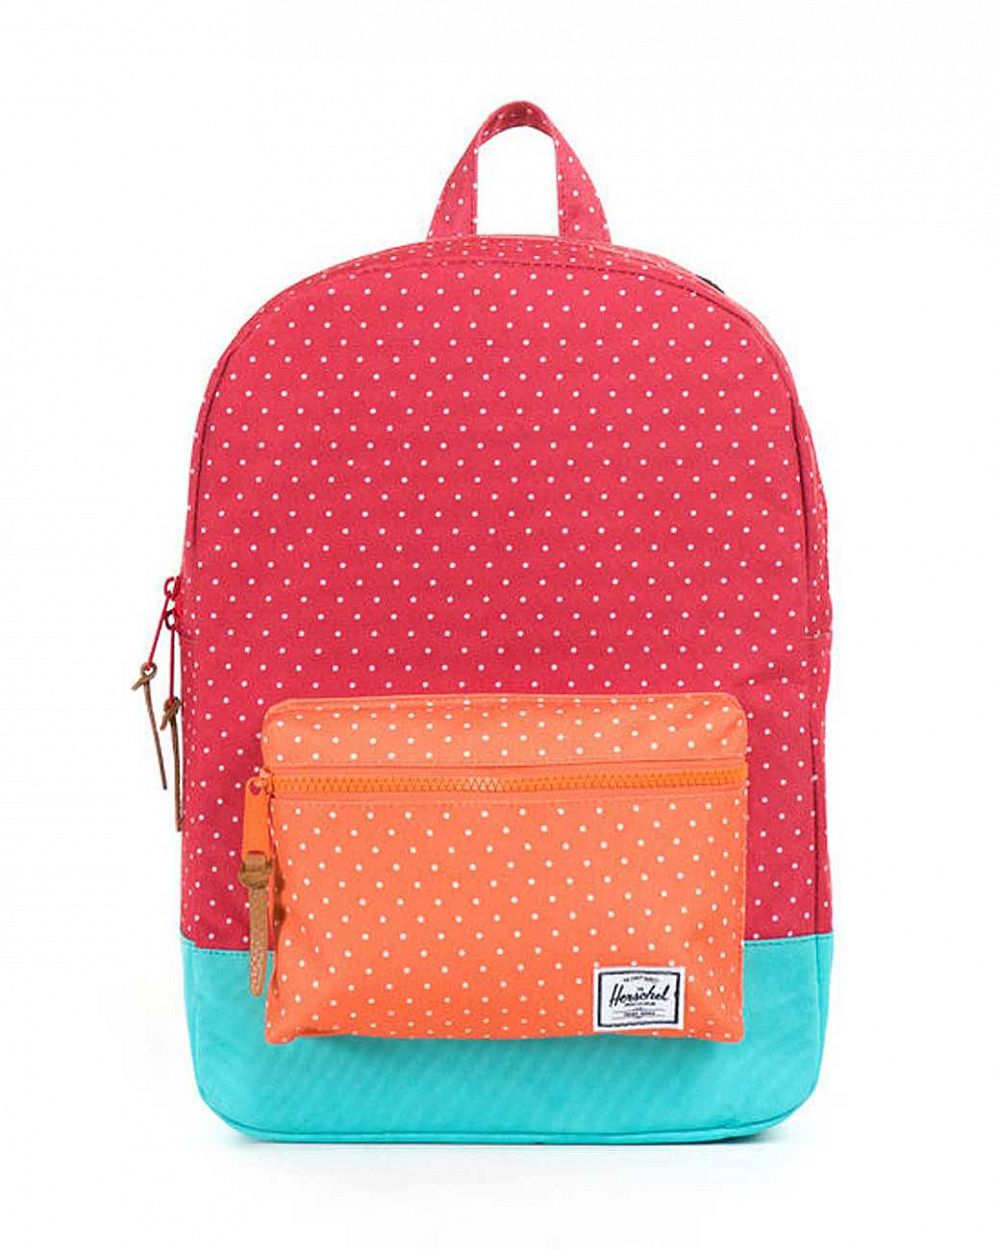 купить Рюкзак детский Herschel Settlement Kids Red Polka Dot Orange Polka Dot Harlow в Москве